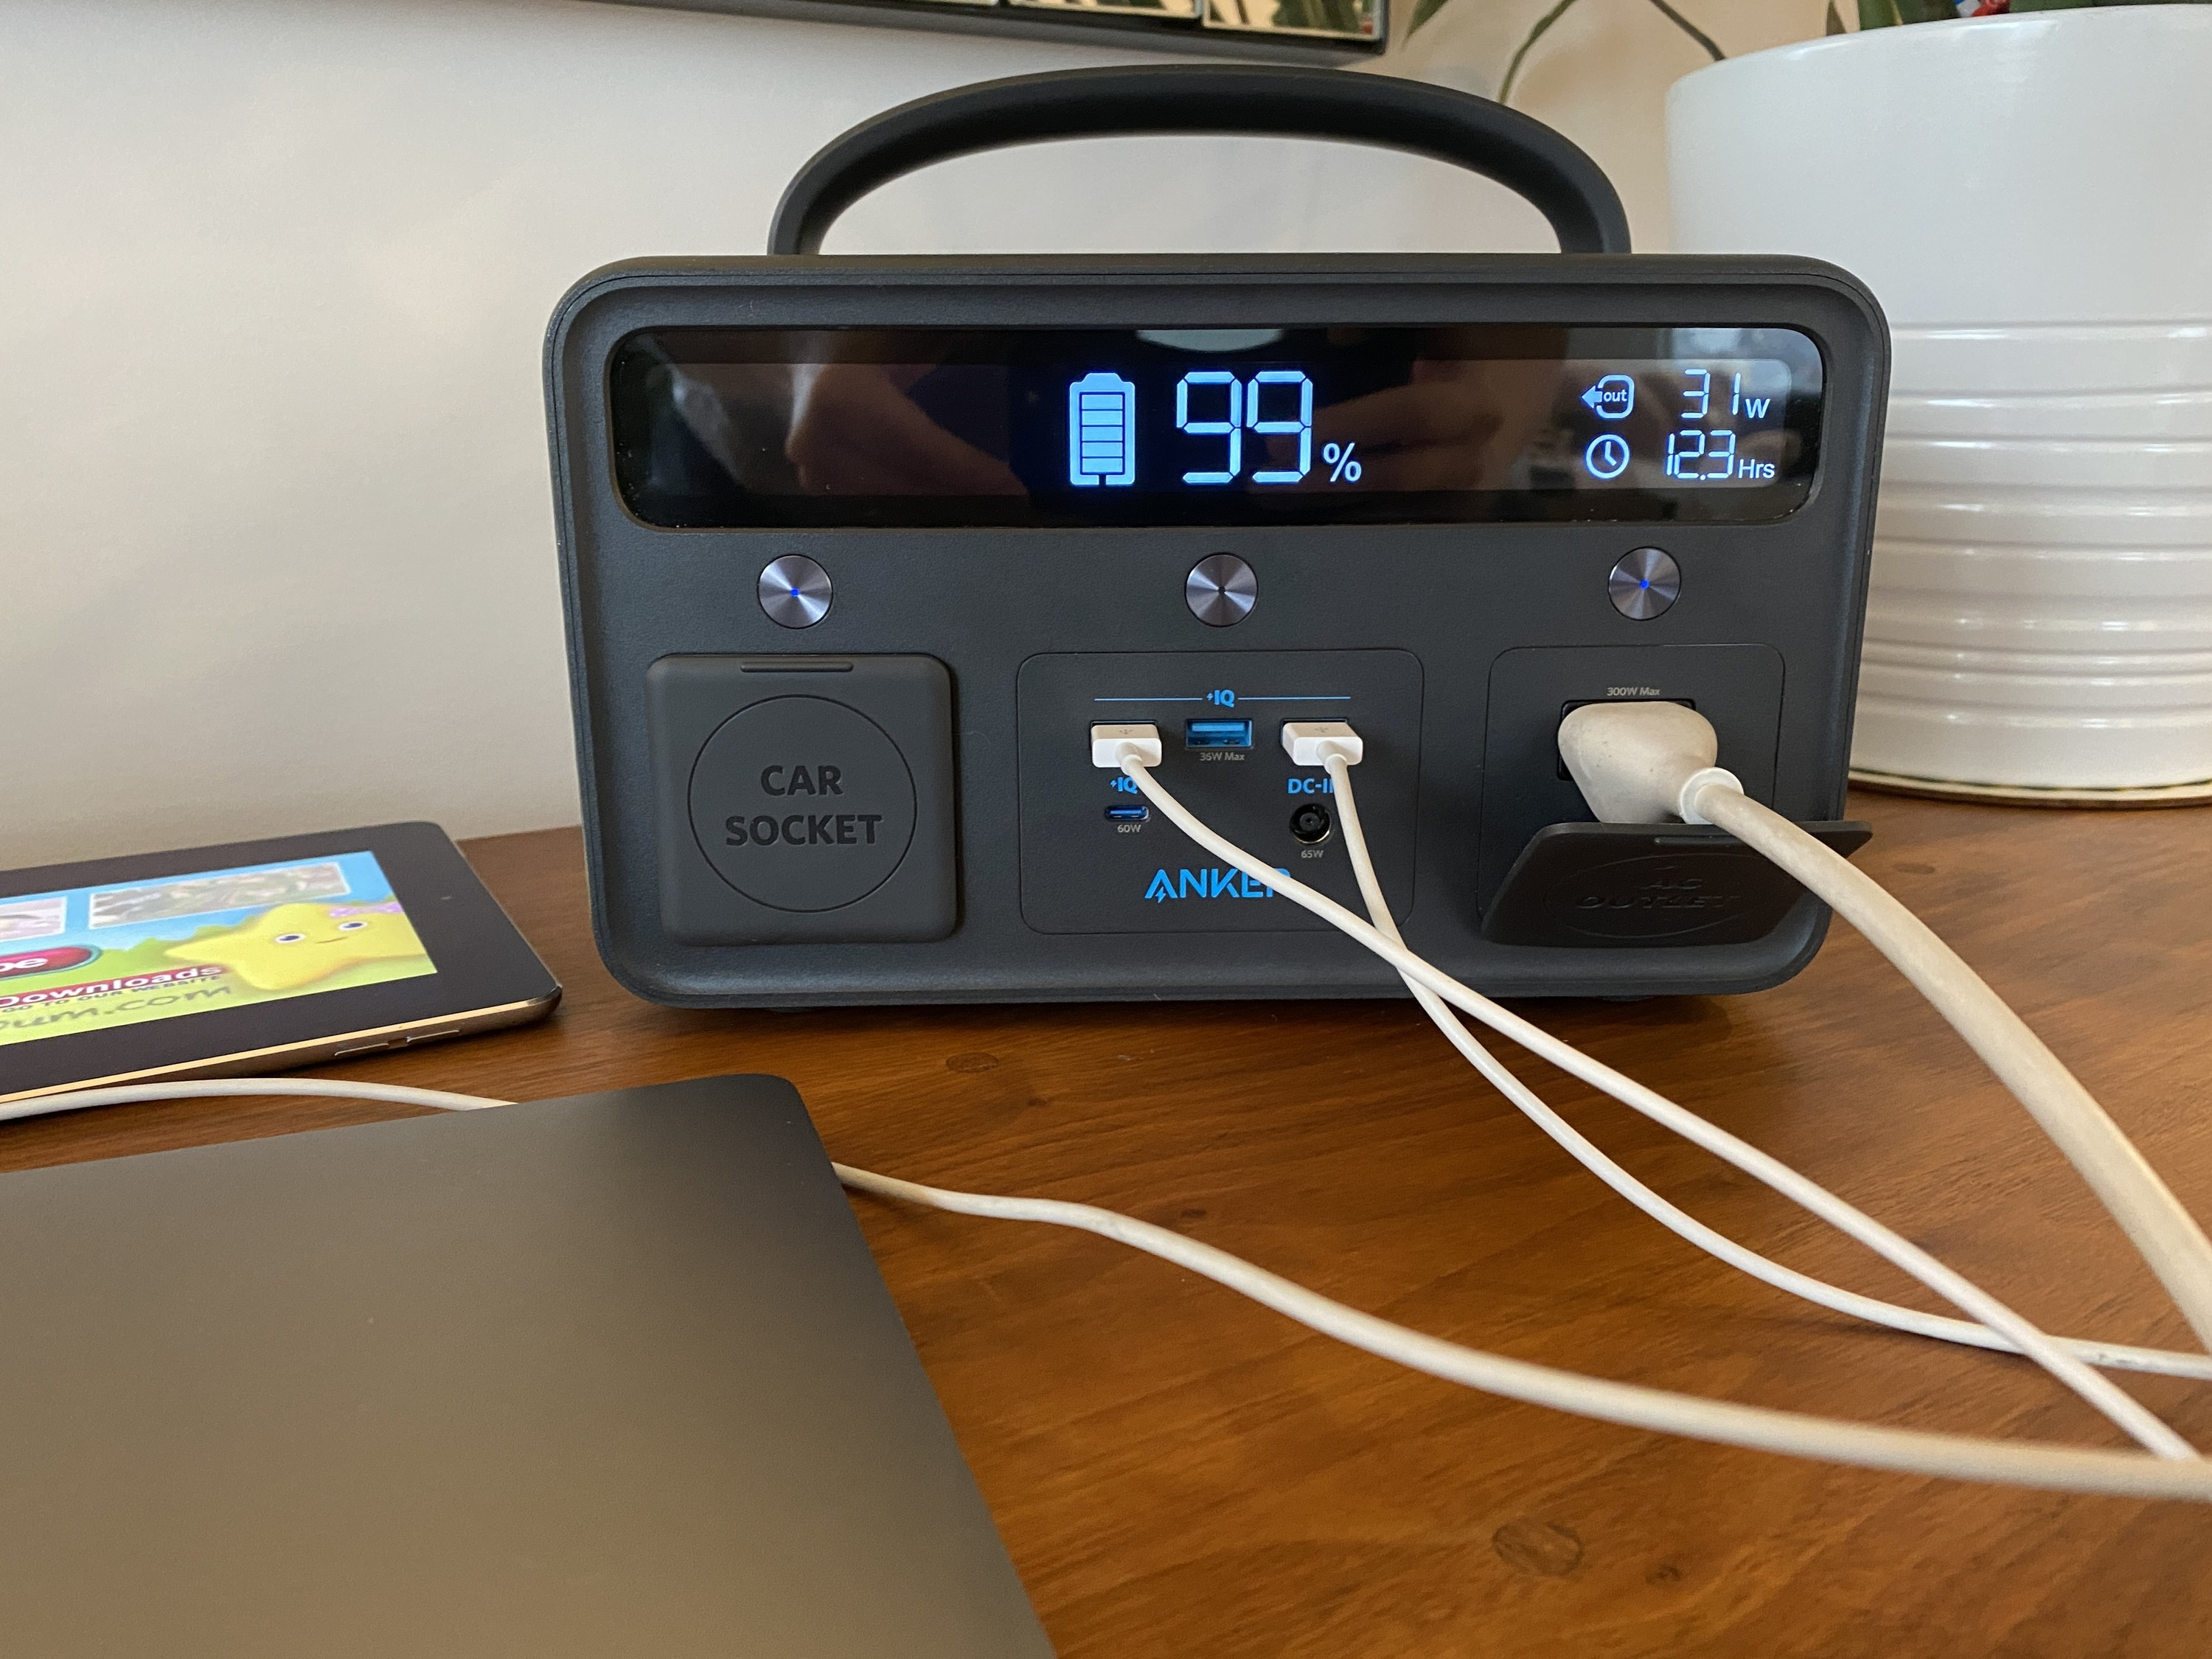 The battery charging multiple devices